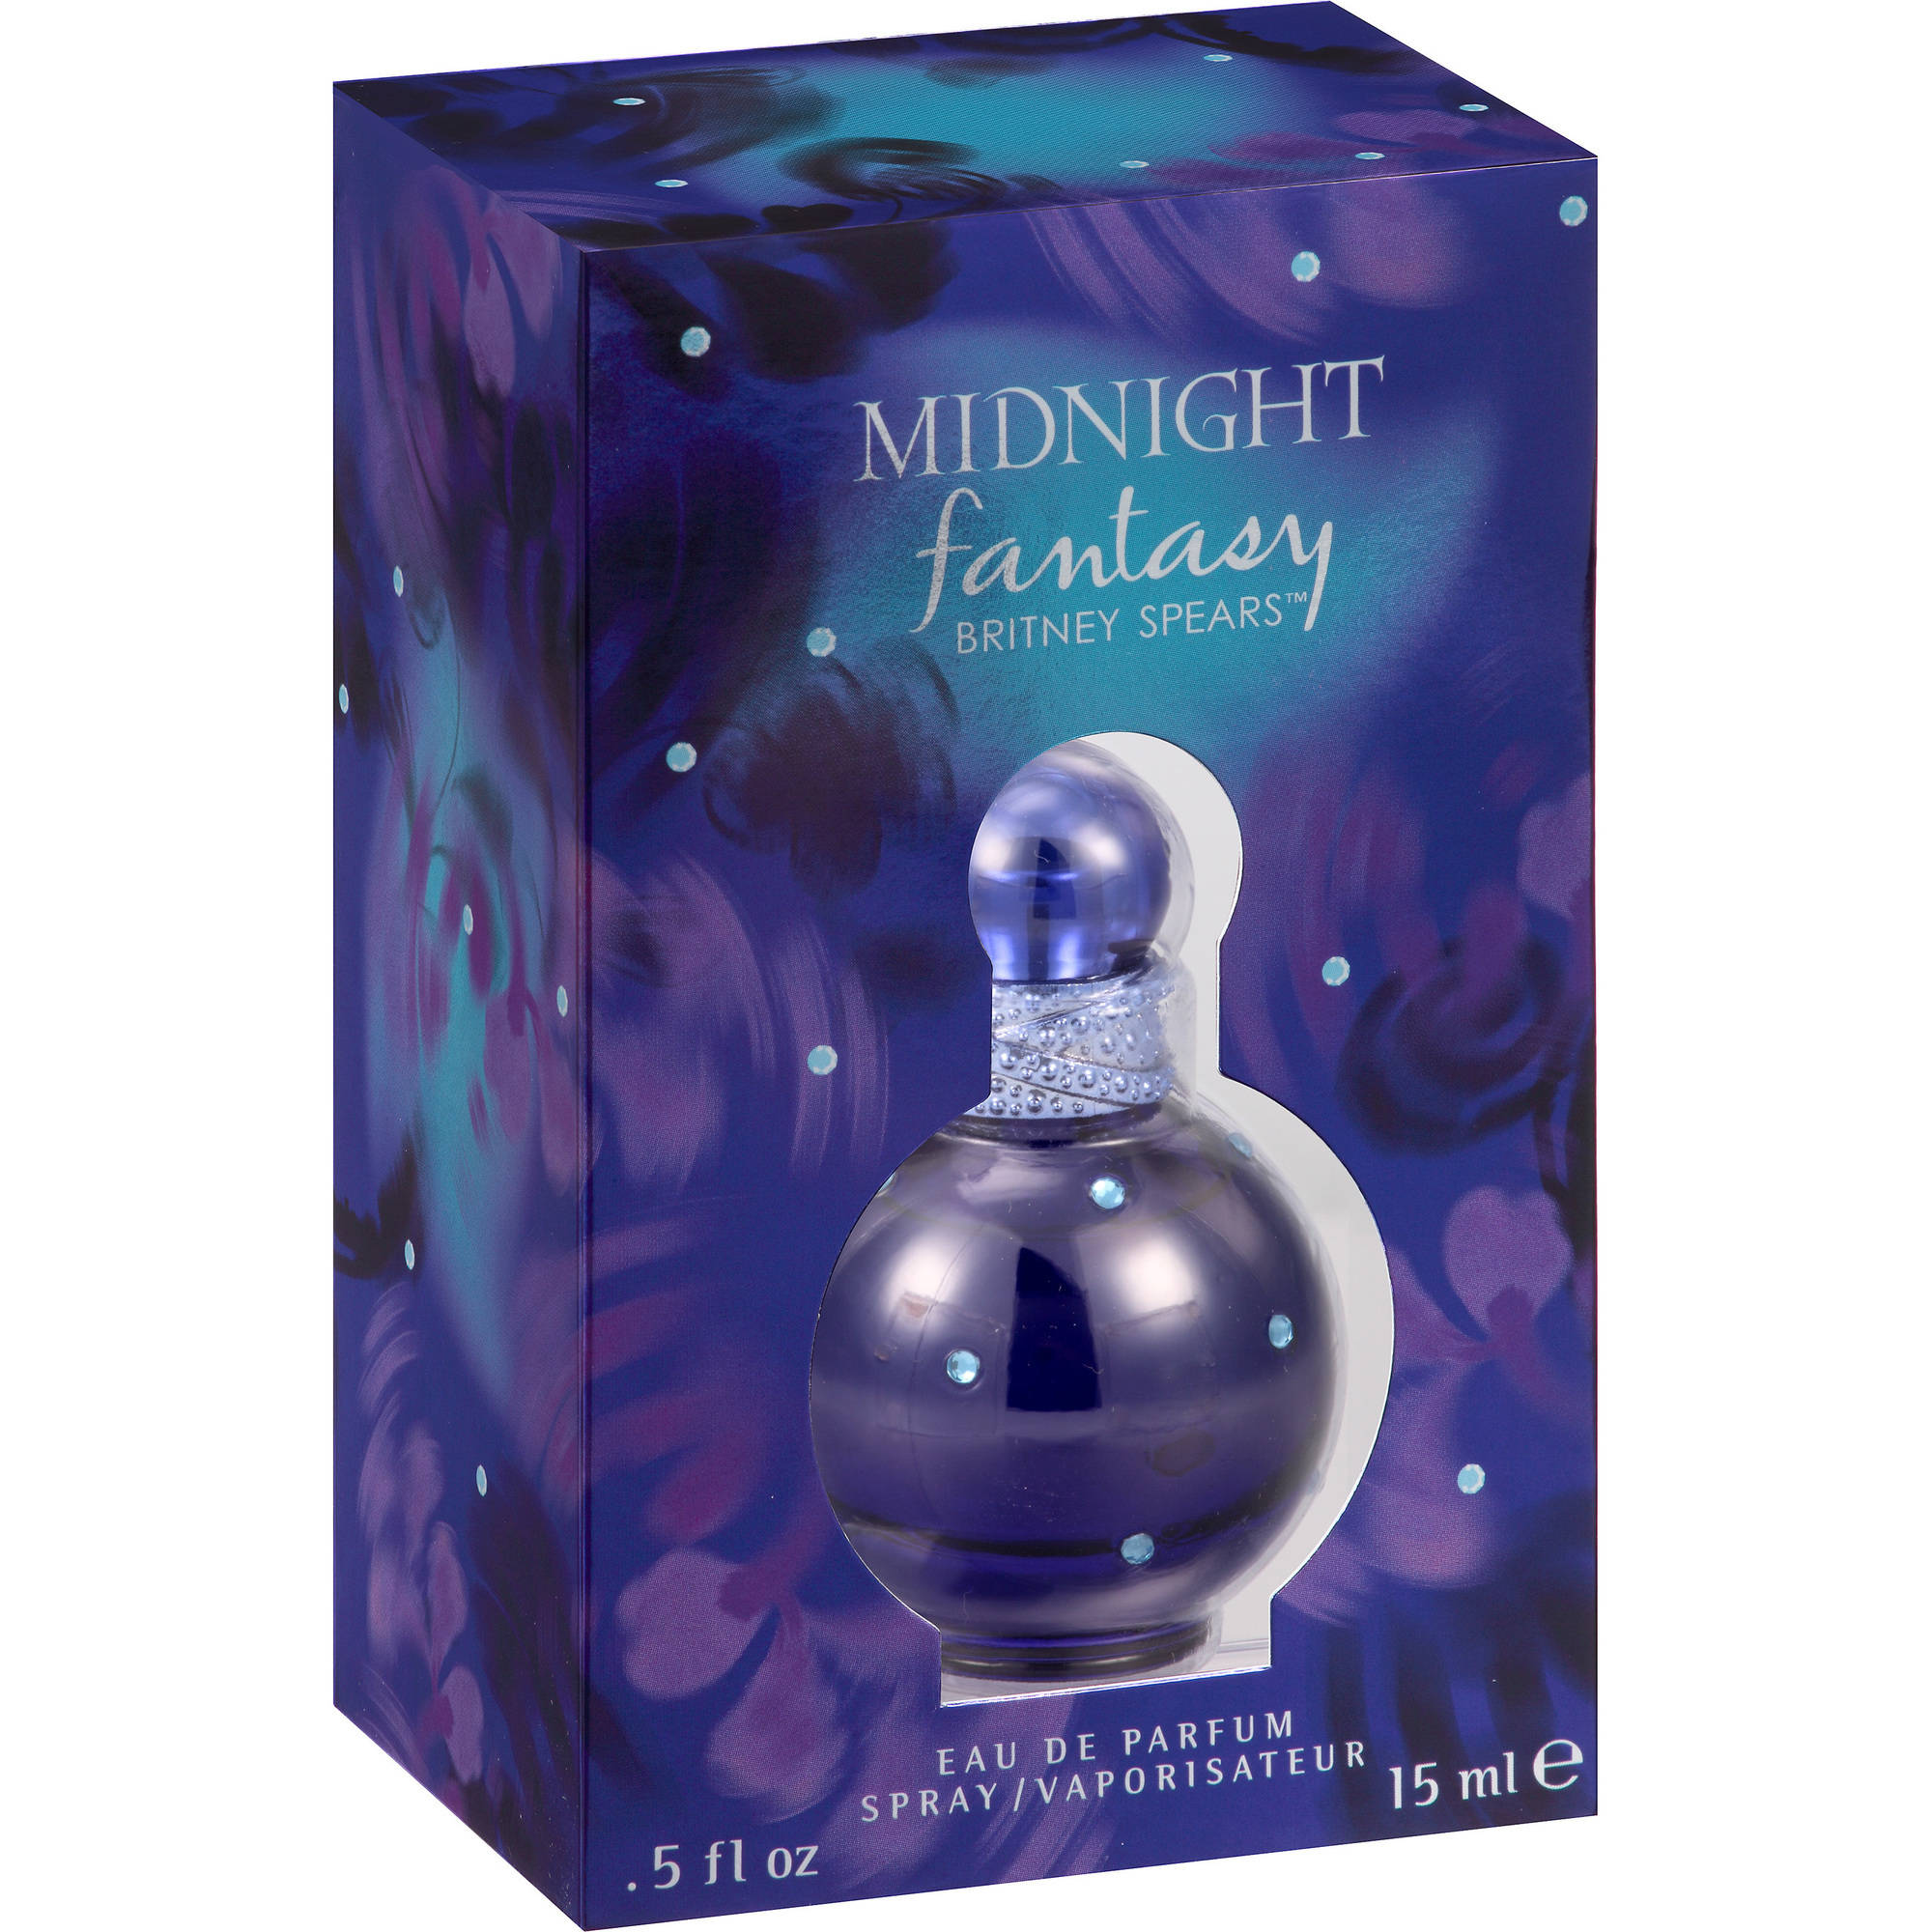 Britney Spears Midnight Fantasy Eau de Parfum Spray, 0.5 fl oz